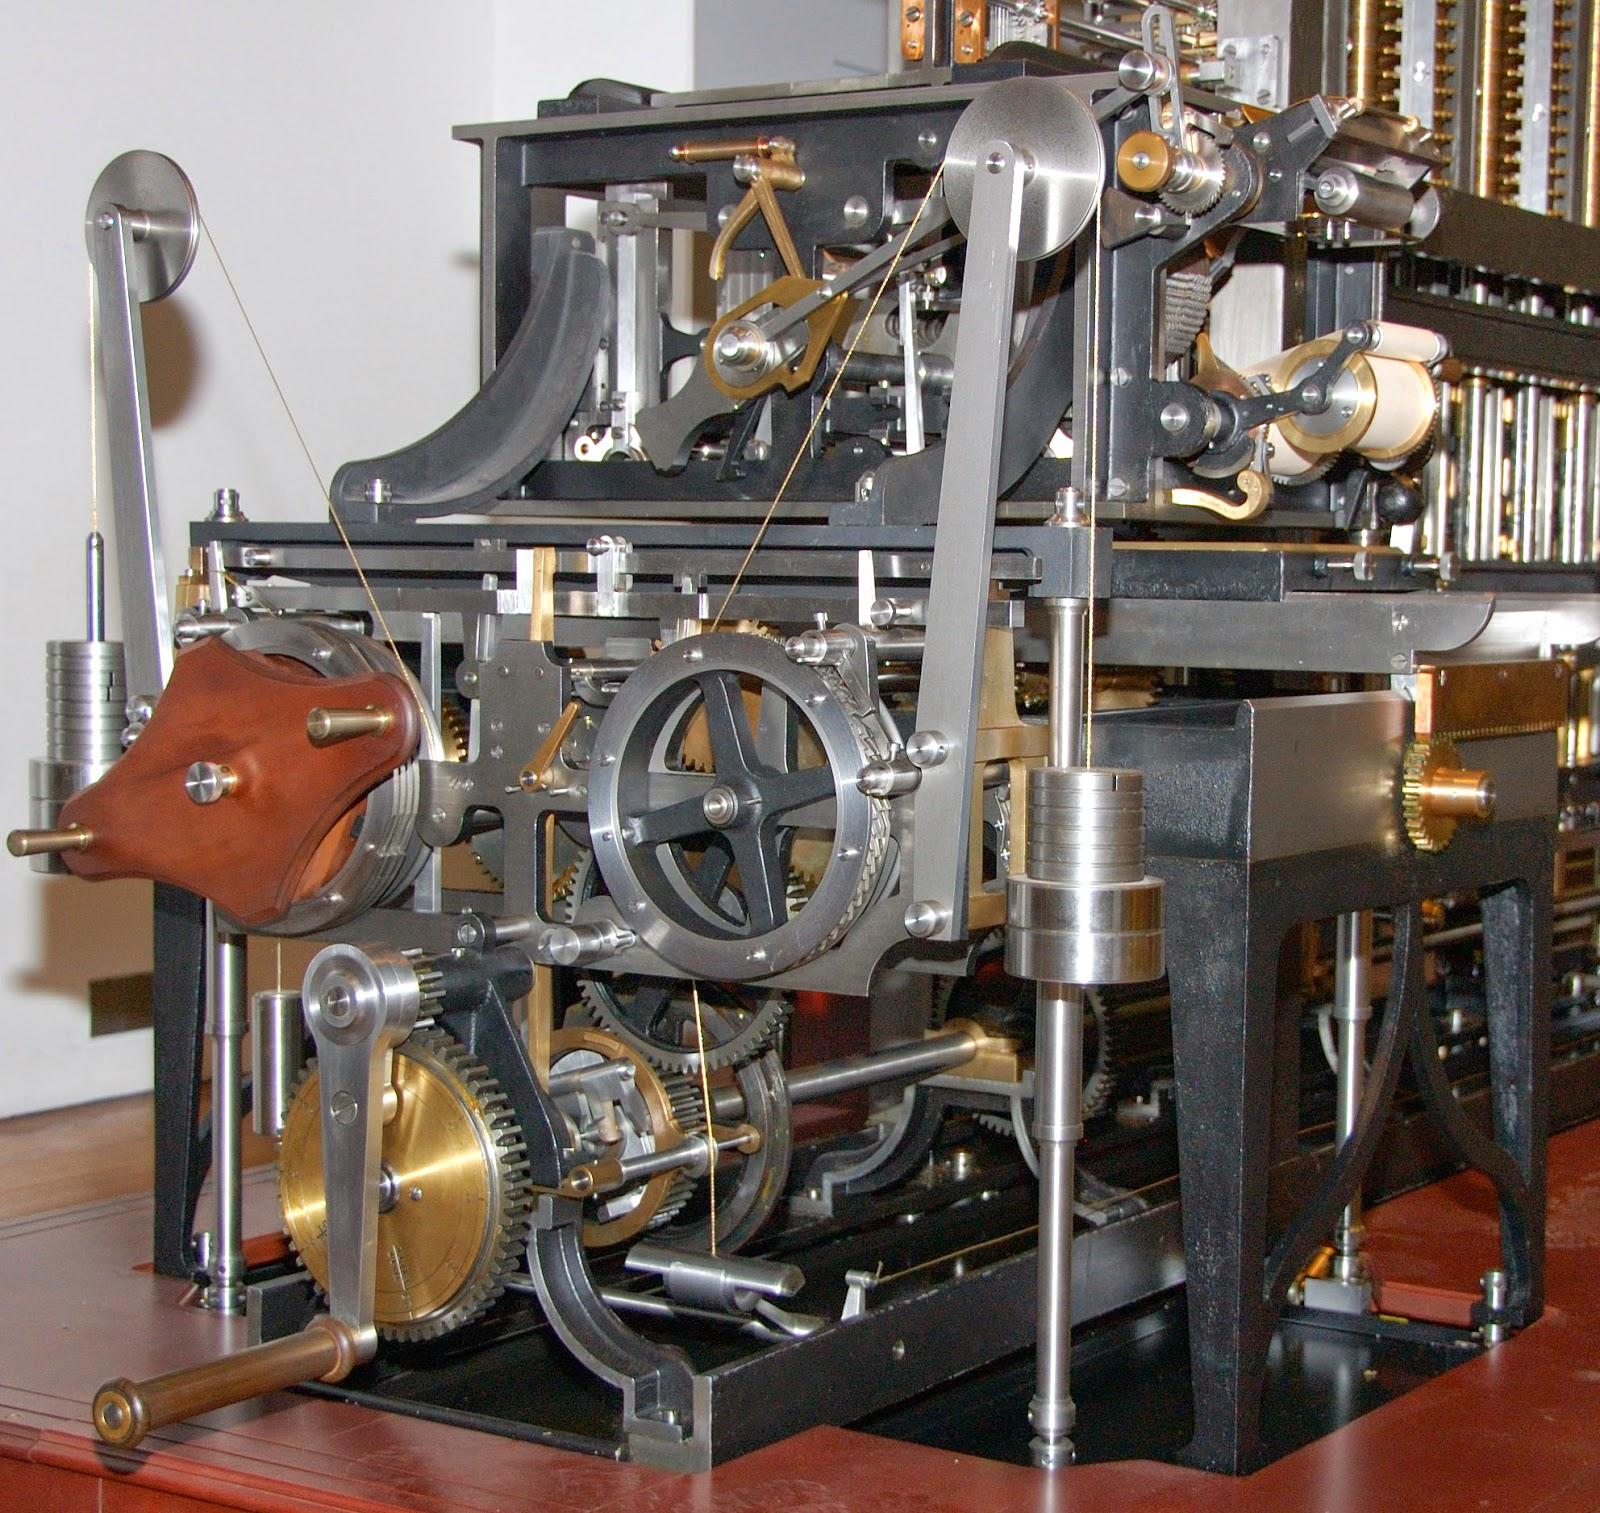 Plan 28 Blog Babbages Language of Thought – Difference Engine Diagram